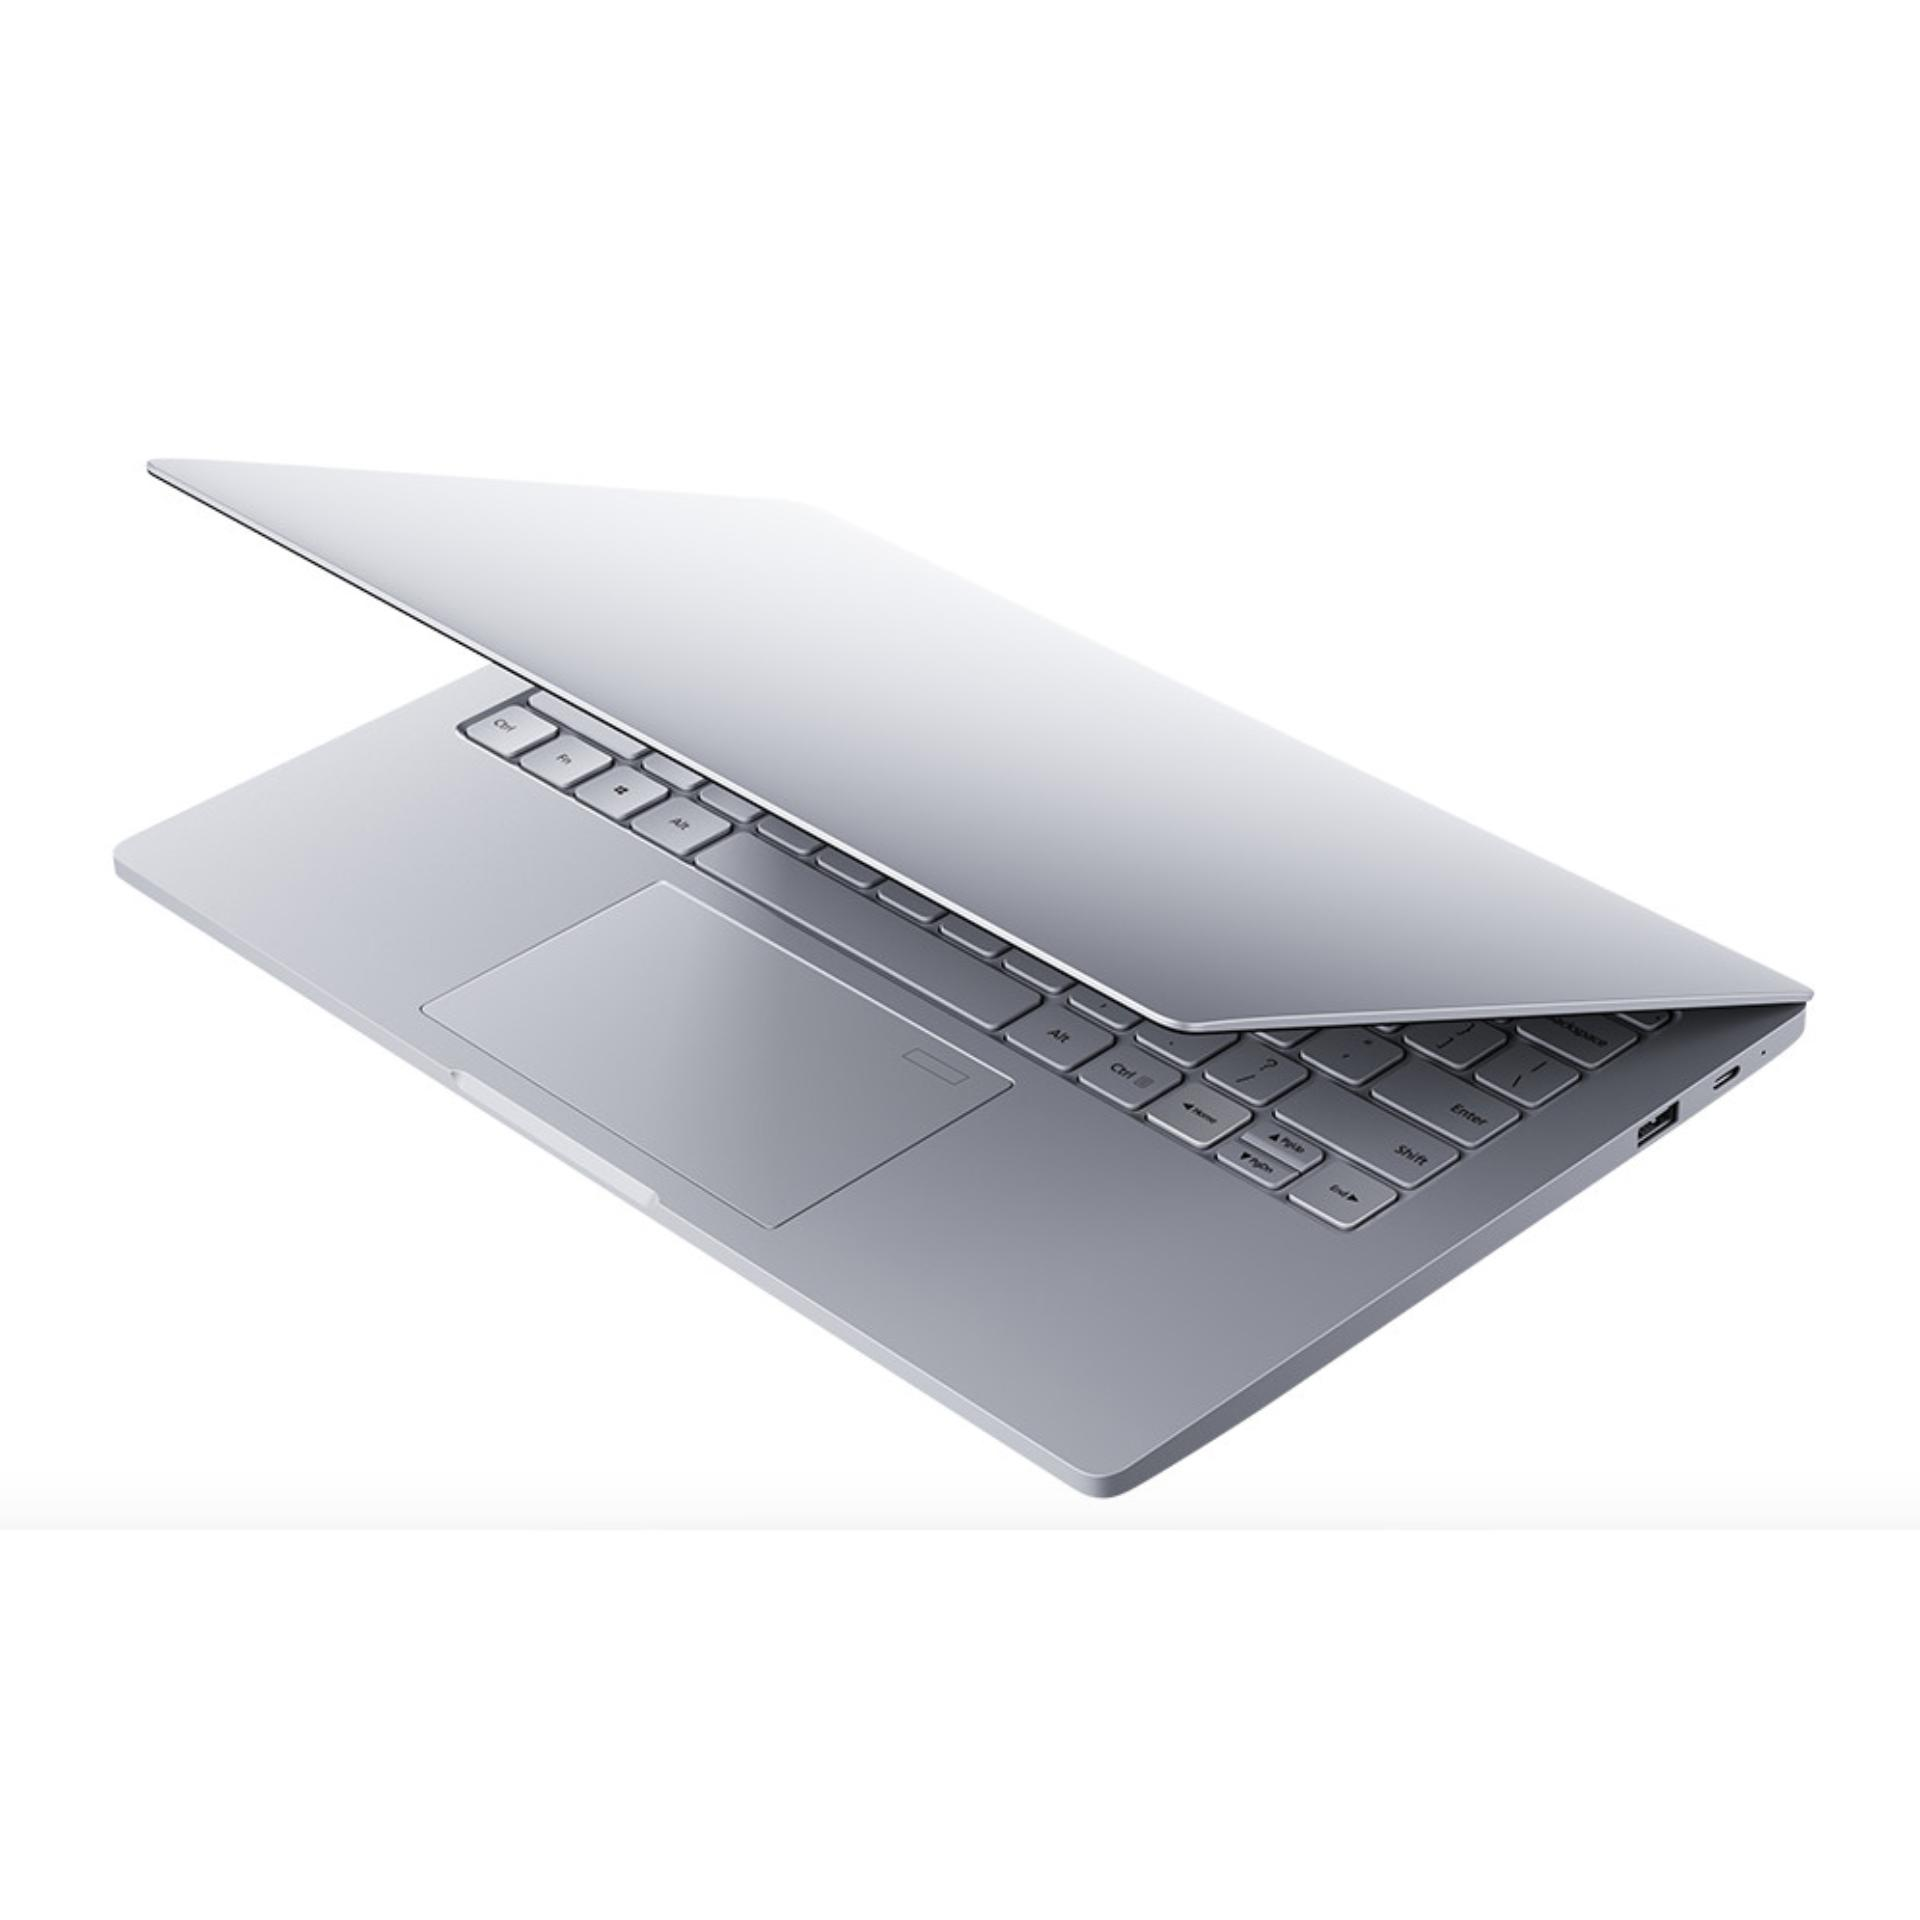 Xiaomi Notebook Air 13.3 inch (Silver) Fingerprint Sensor (Export)